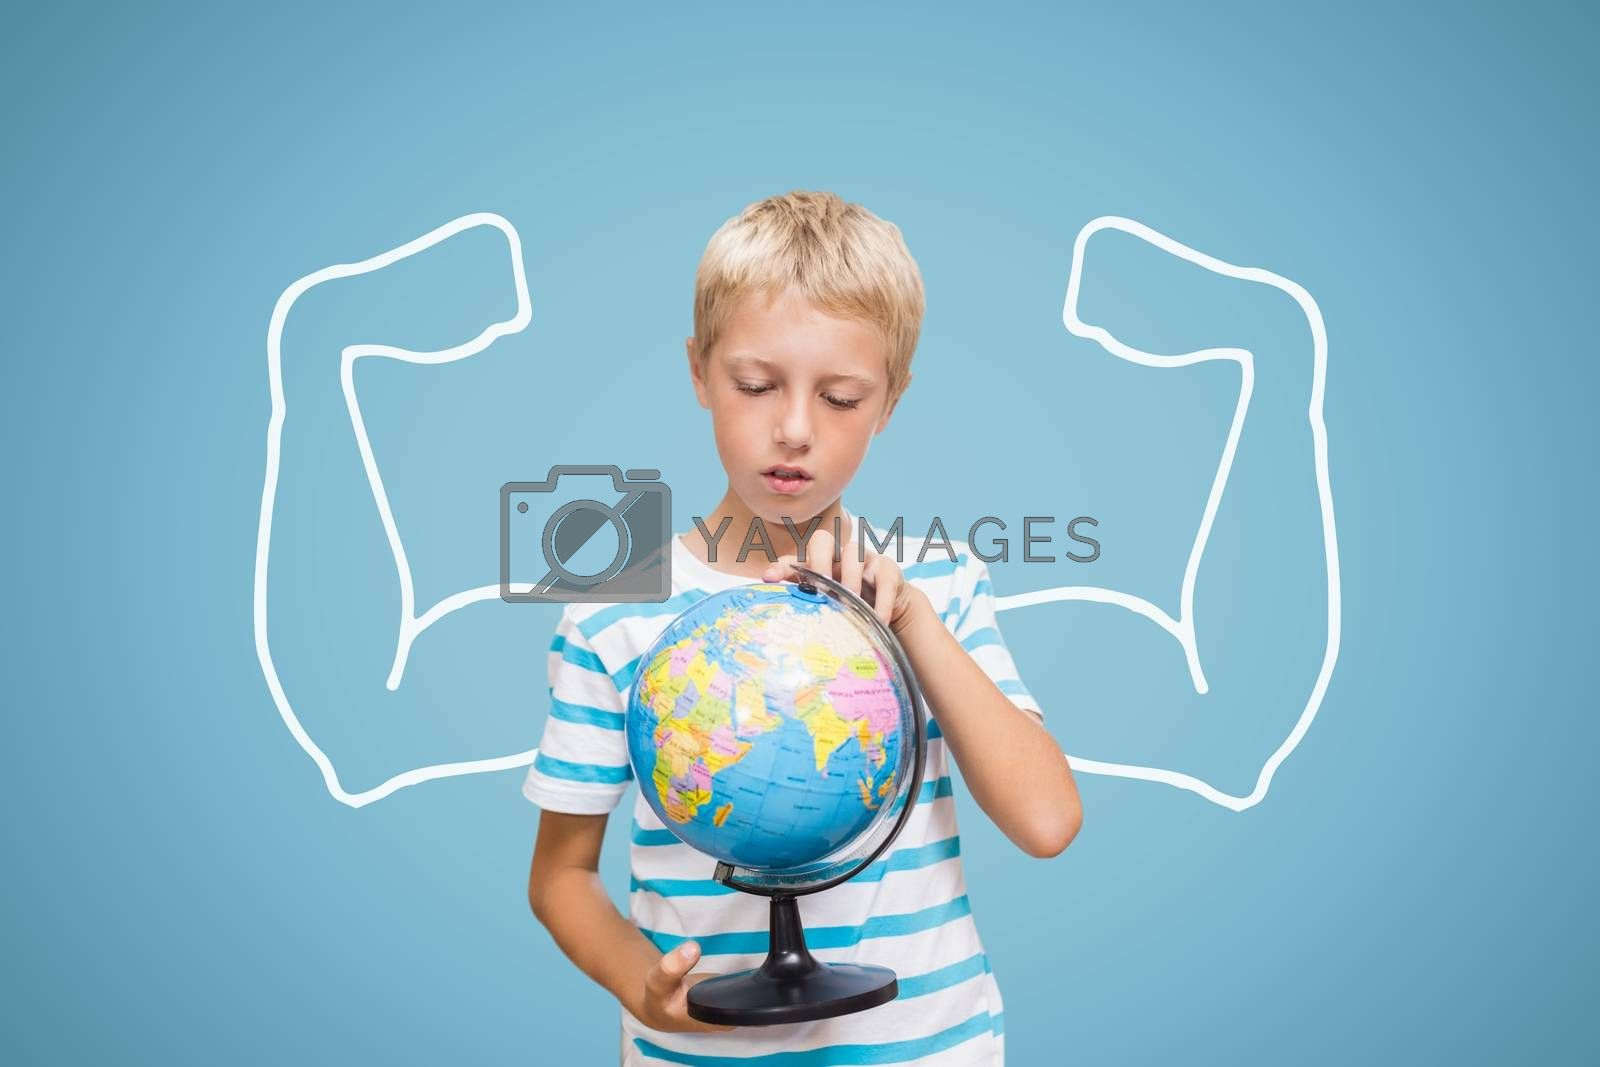 Student boy with fists graphic holding a globe against blue background by Wavebreakmedia